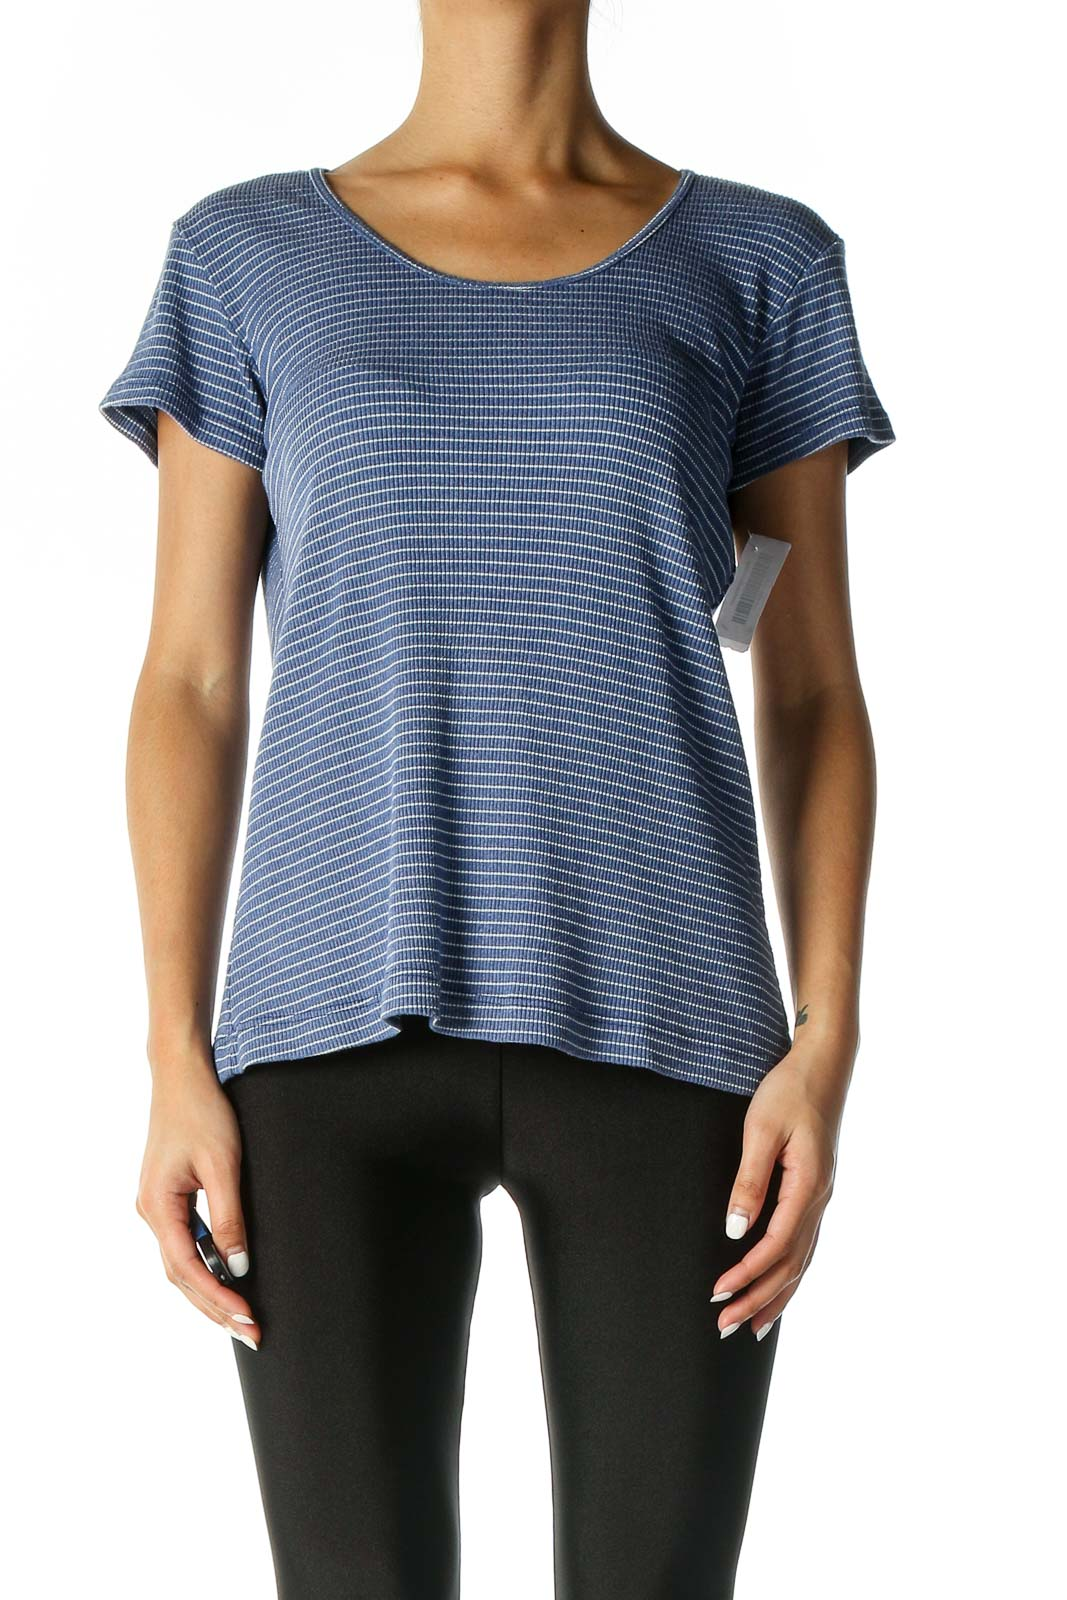 Blue Striped Casual Blouse Front